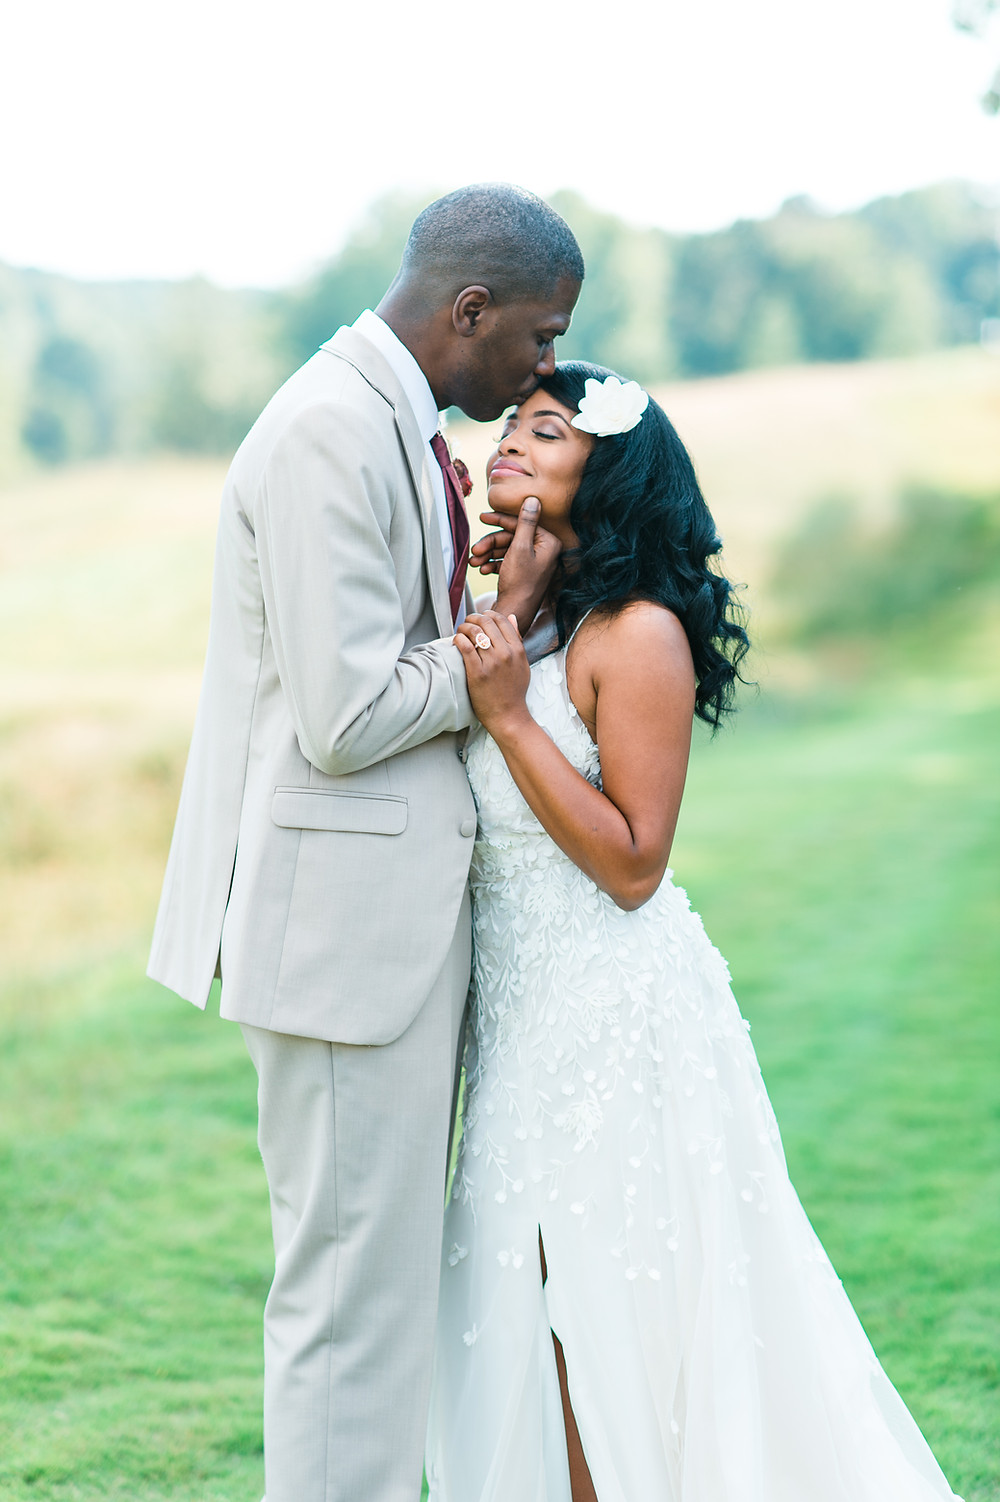 A groom kissed her bride on the forehead at The Greystone Estate